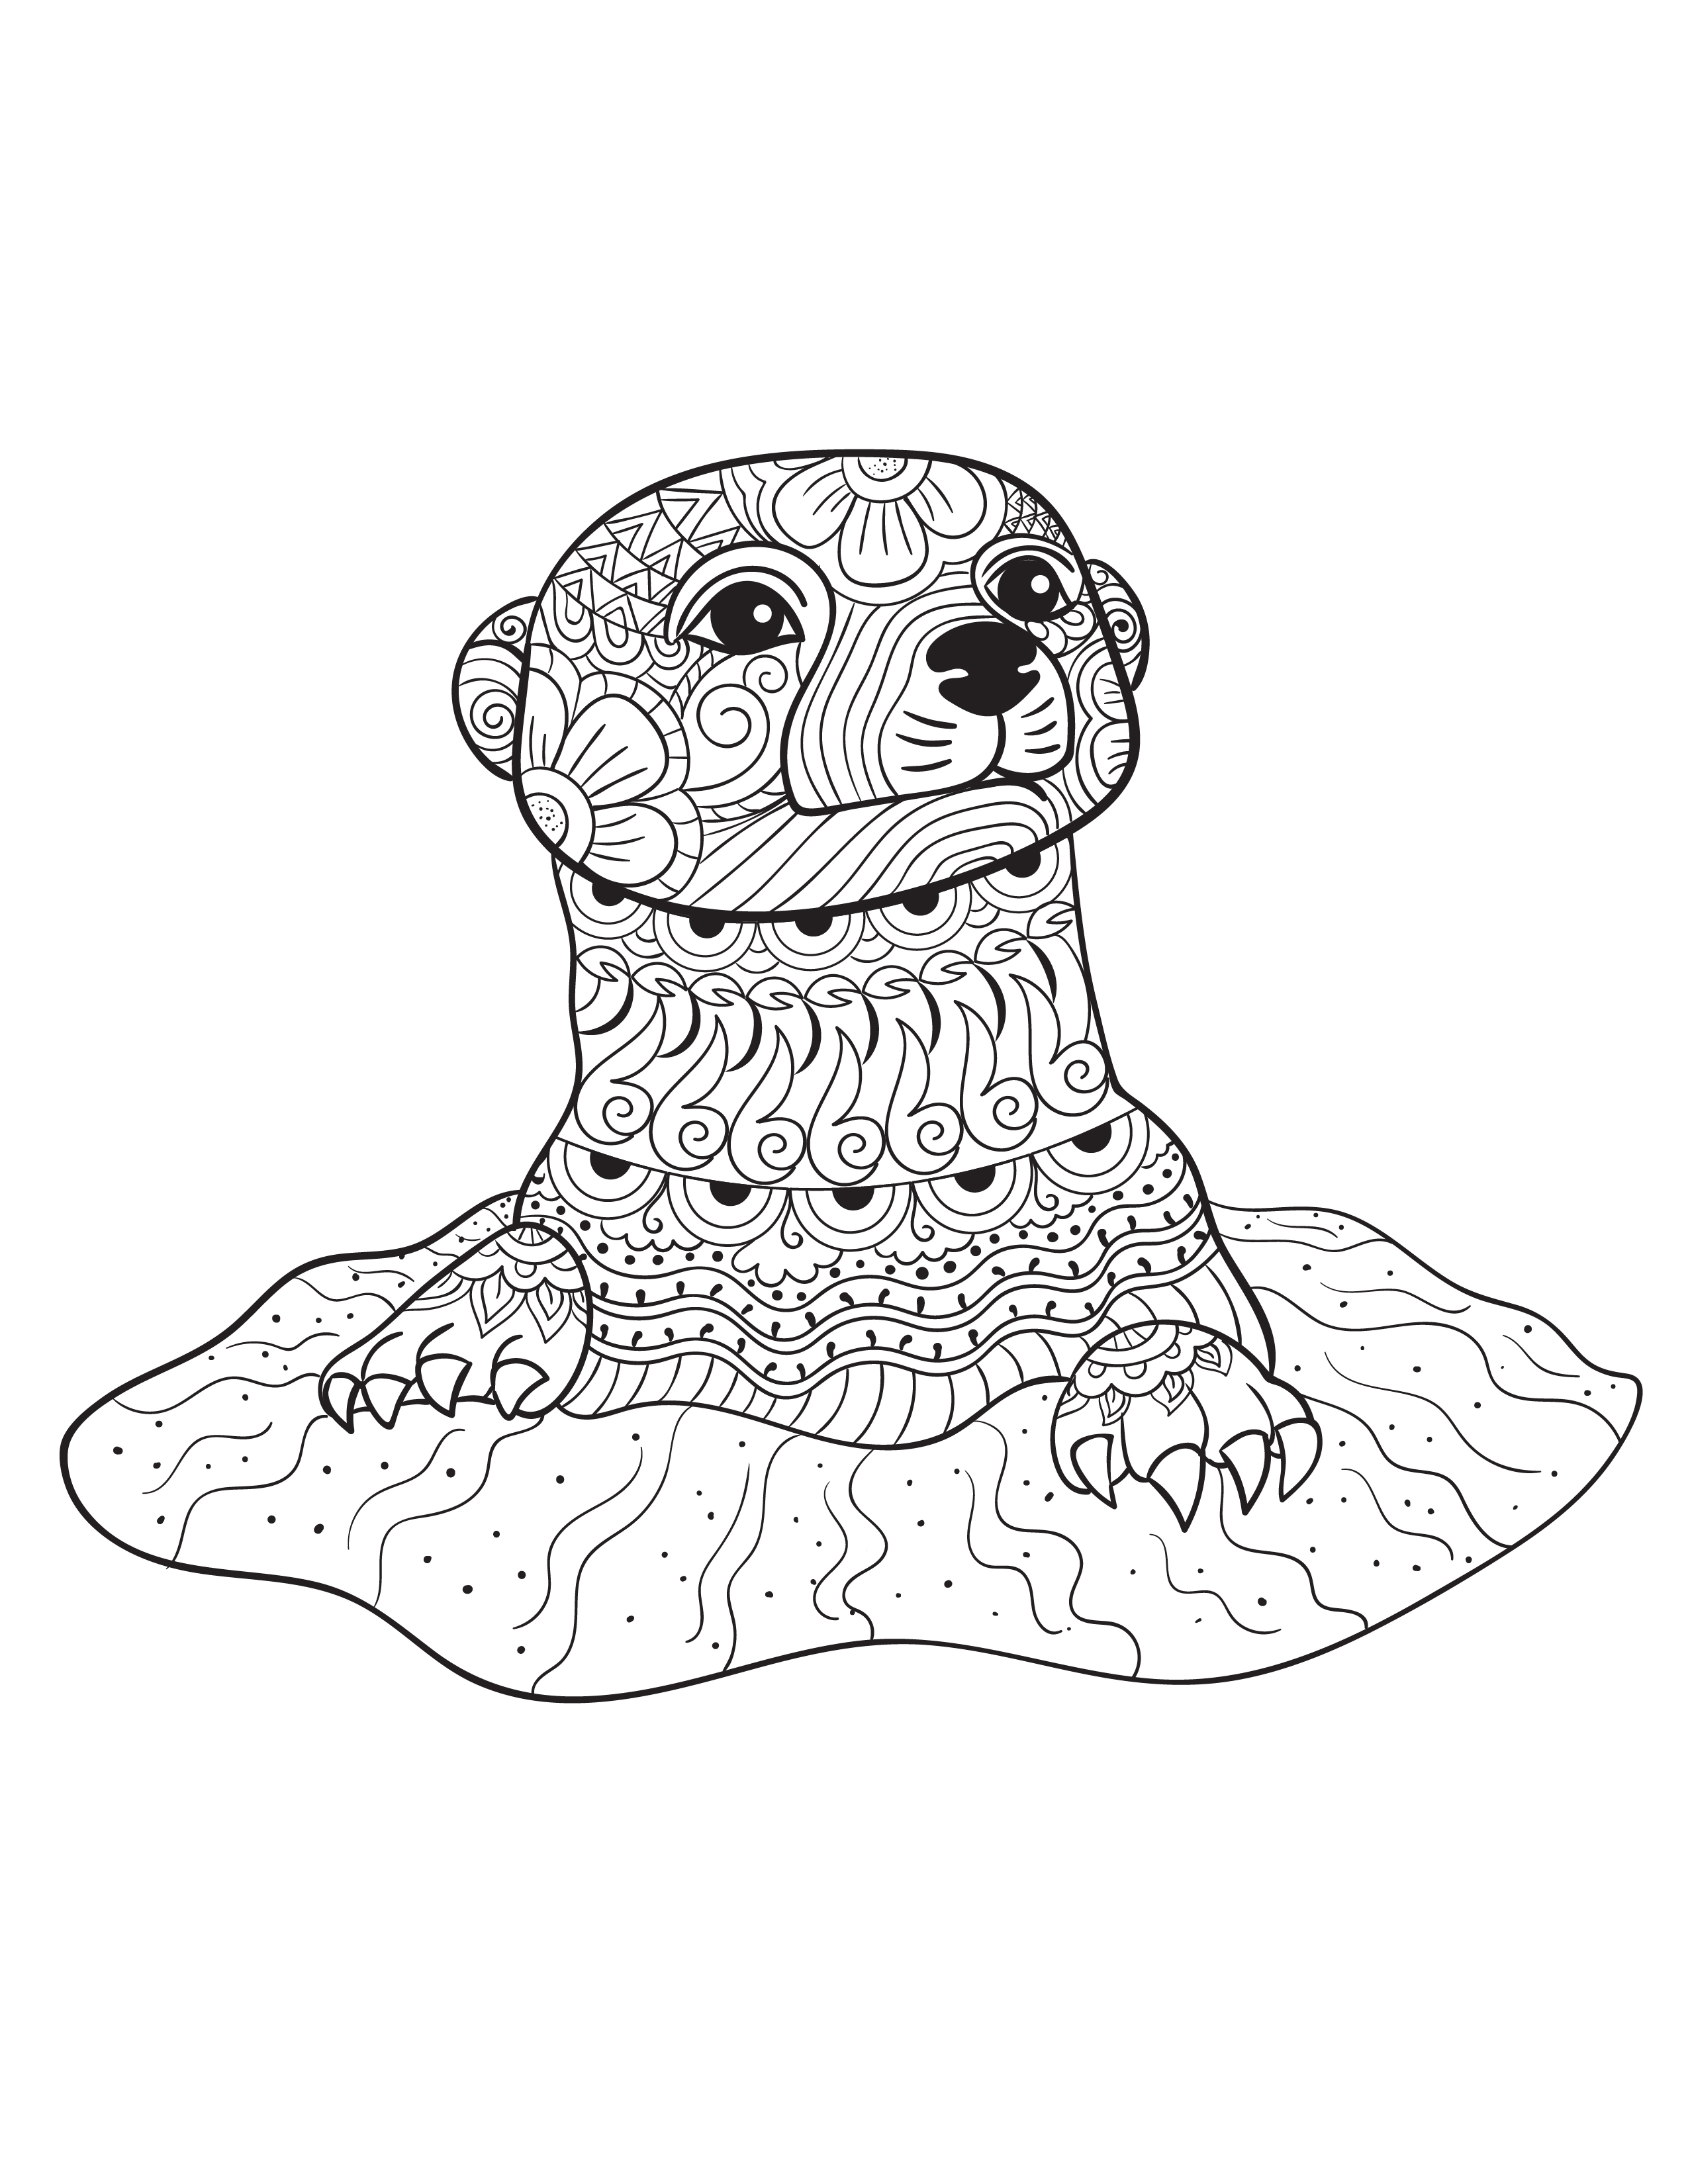 2550x3300 Best Of Animal Coloring Pages For Adults Gallery Printable